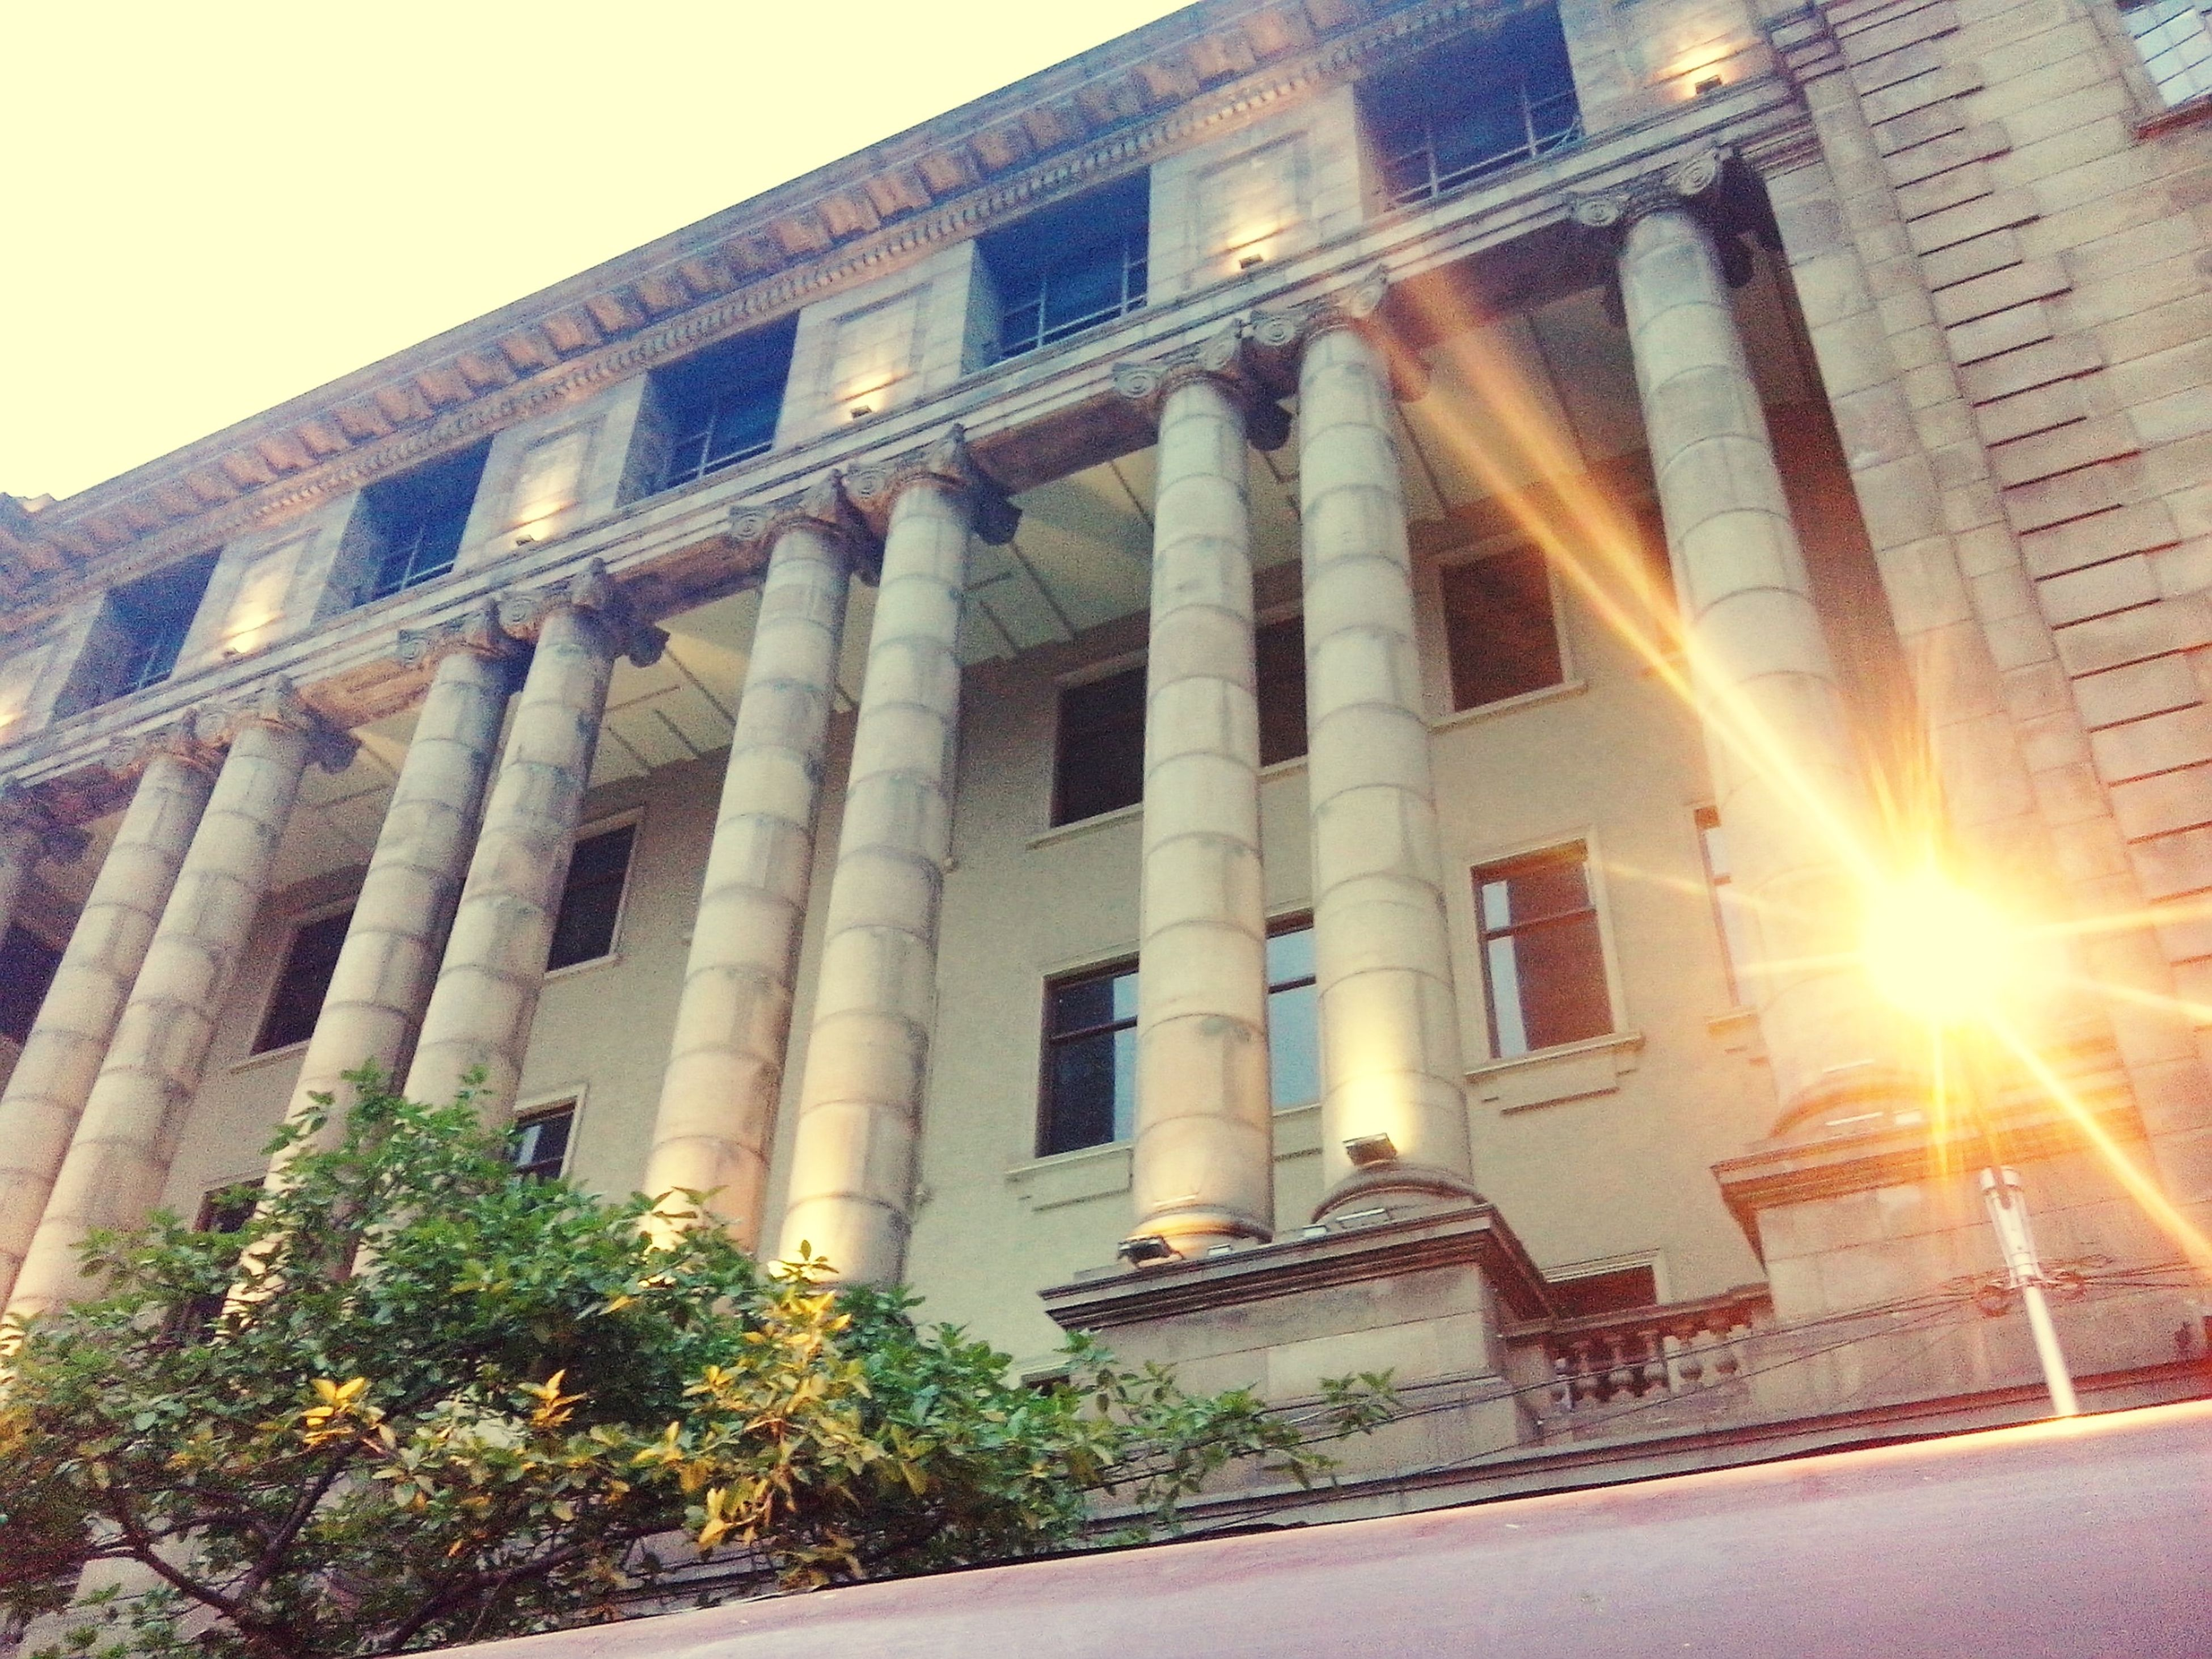 architecture, built structure, building exterior, low angle view, sun, sunlight, sunbeam, city, sky, lens flare, history, building, facade, architectural column, travel destinations, famous place, outdoors, tree, day, window